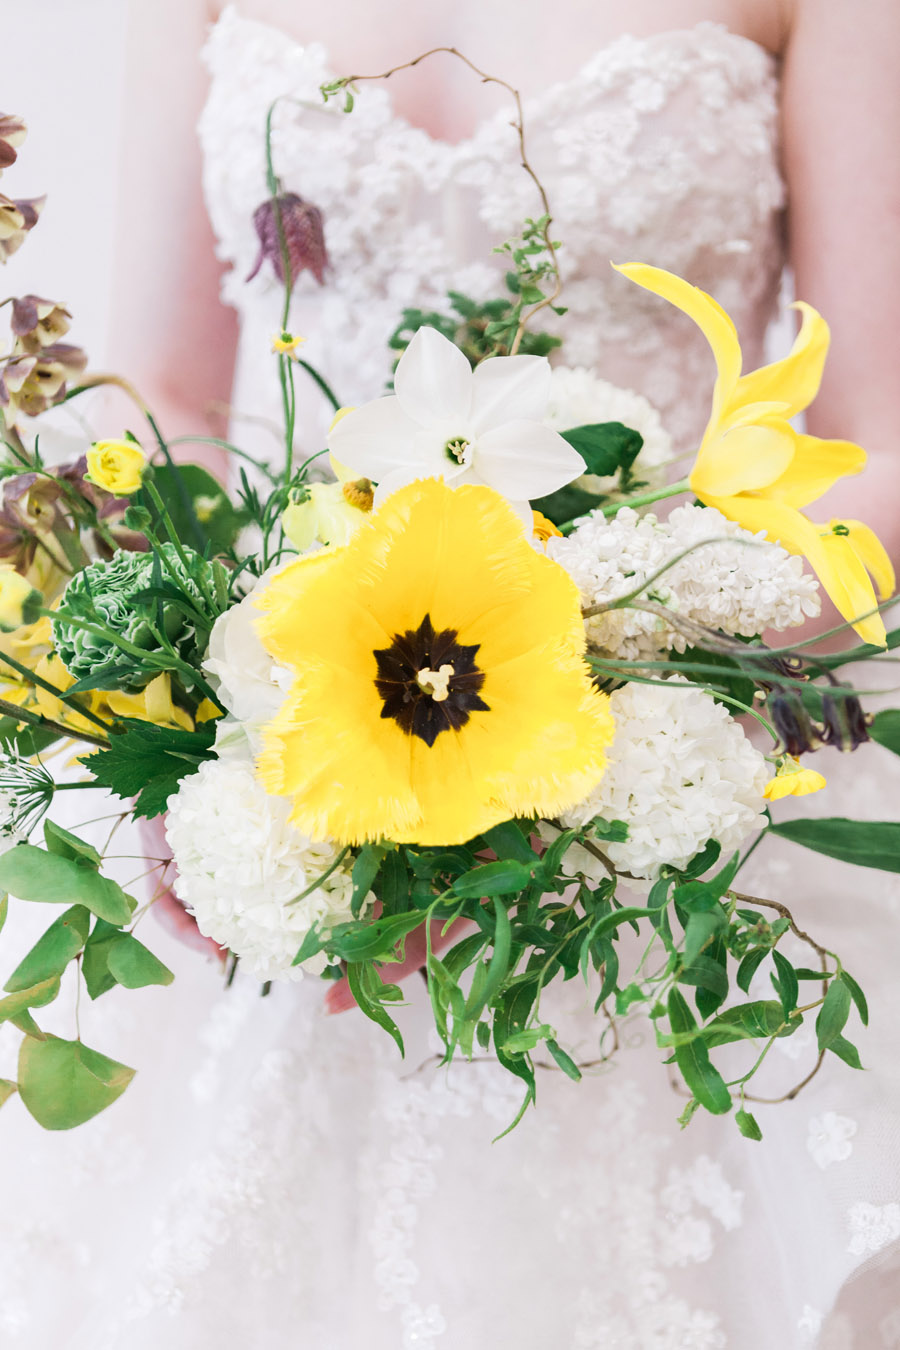 Glorious yellow Bloomologie blooms and styling by Chenai - photo credit Amanda Karen Photography (3)